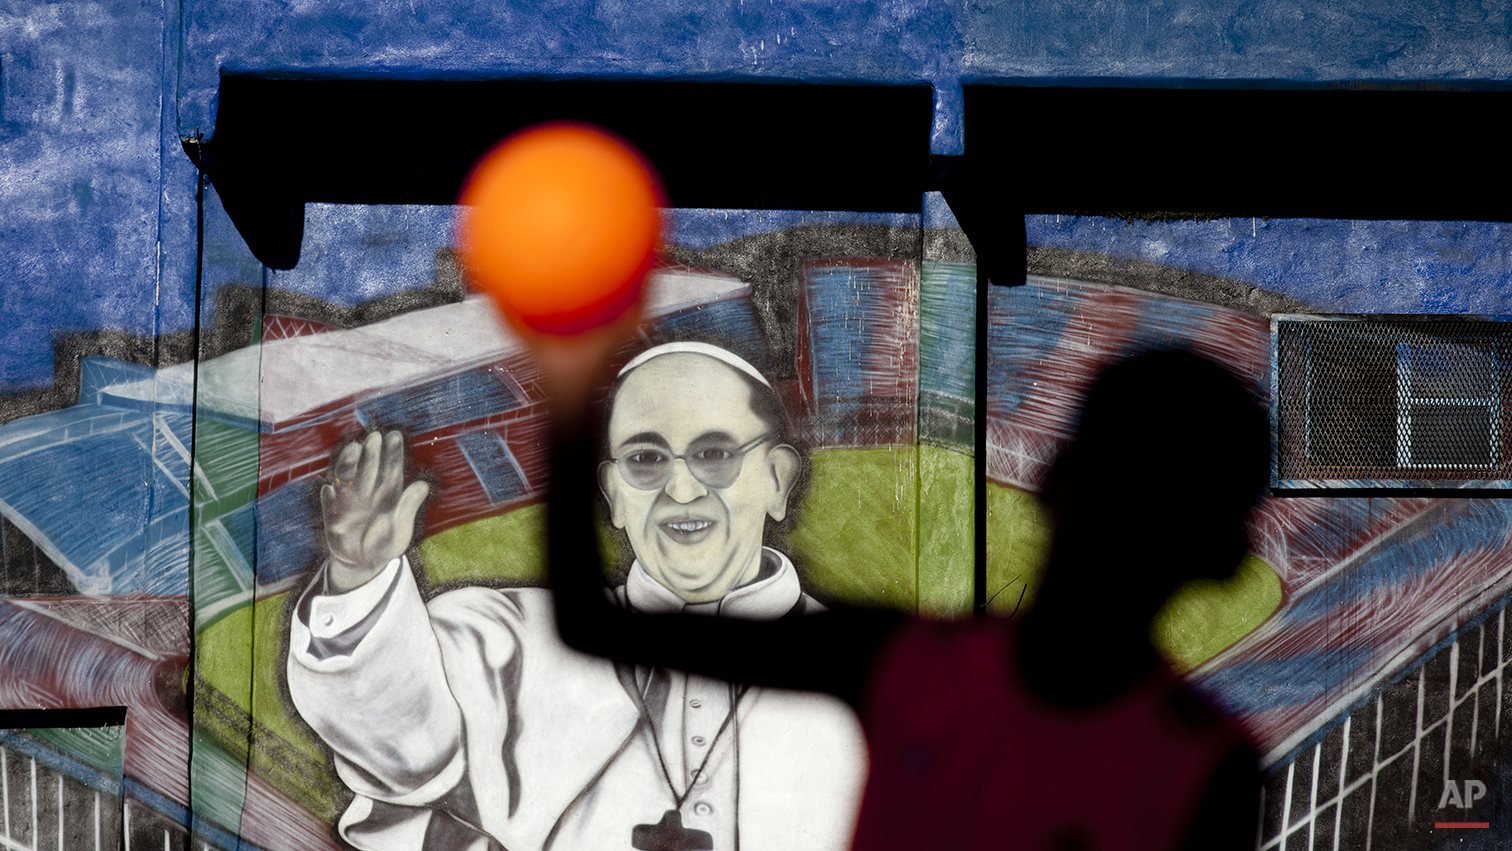 A child plays soccer in front a mural of Pope Francis at the 1-11-14 slum in Buenos Aires, Argentina, Thursday, March 13, 2014. On the day of the first anniversary of the Pope's election, people from the 1-11-14 slum gather at the their church to attend a mass given in his honor and to watch an interview that Pope Francis gave recently from his residence at the Vatican to FM Bajo Flores, a community radio station that broadcasts from the slum. (AP Photo/Natacha Pisarenko)